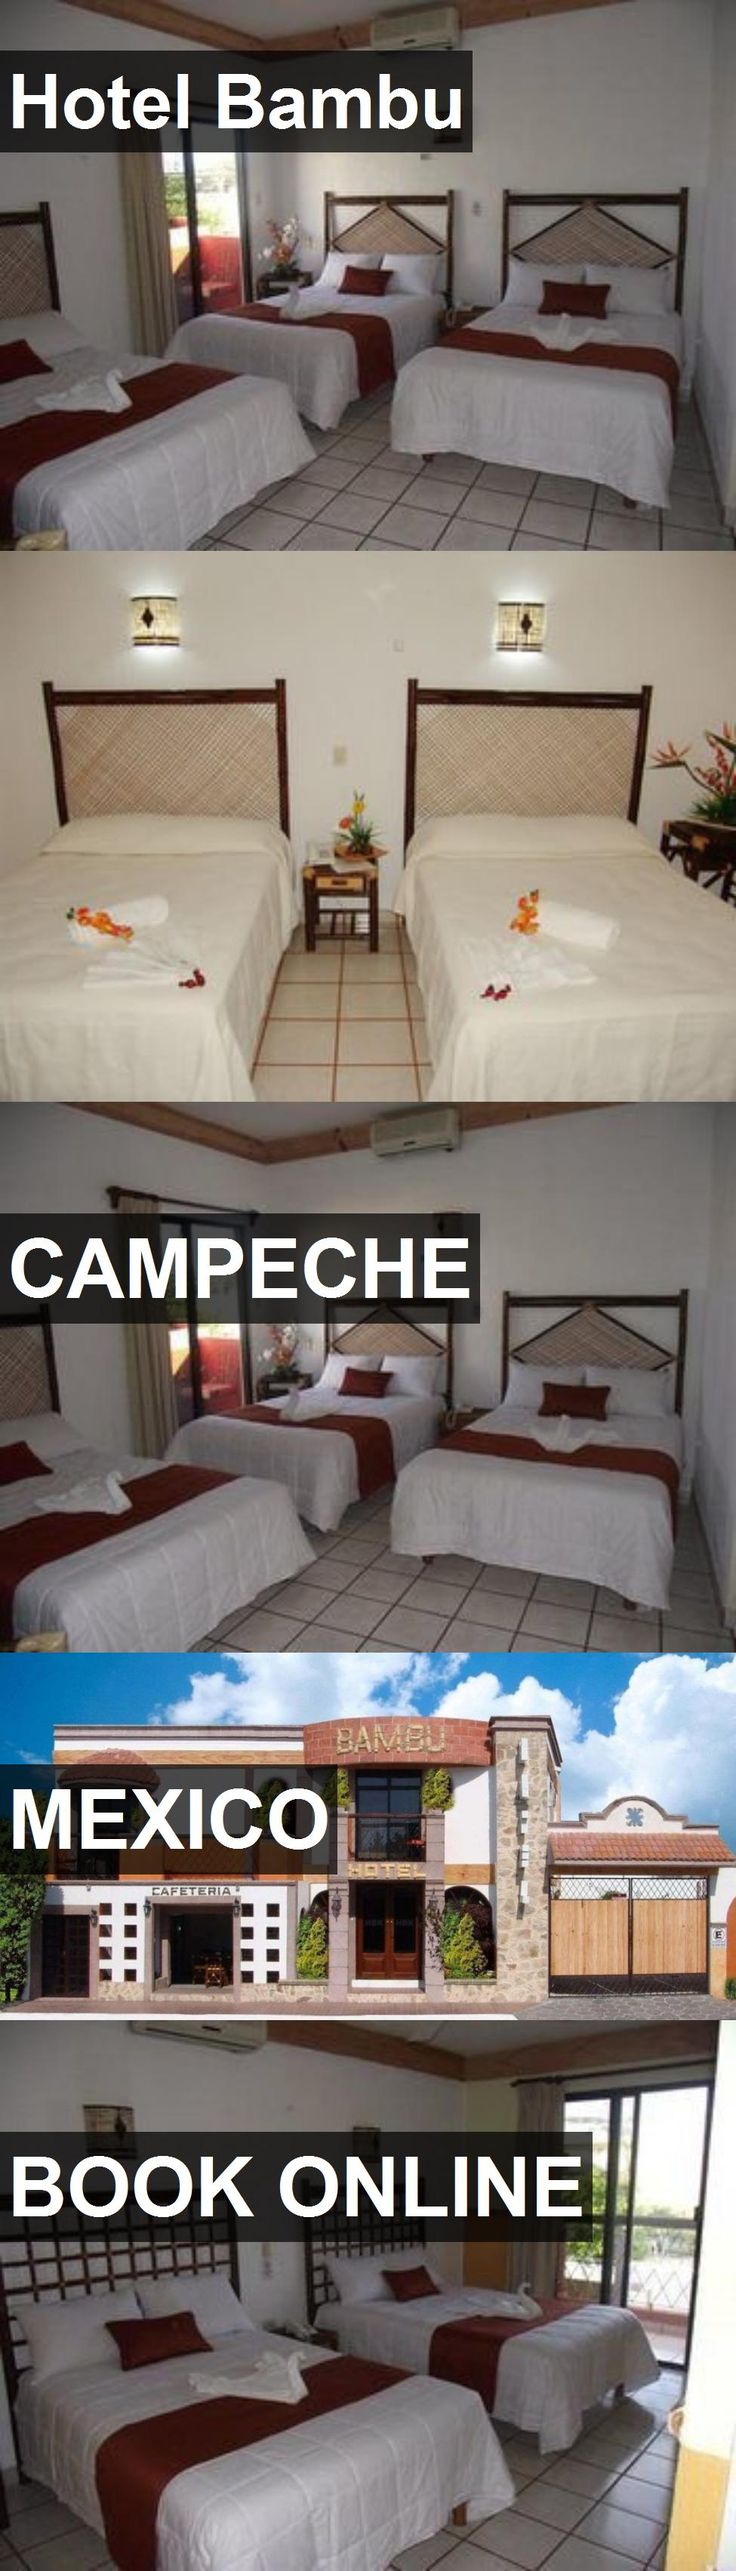 Hotel Bambu in Campeche, Mexico. For more information, photos, reviews and best prices please follow the link. #Mexico #Campeche #travel #vacation #hotel